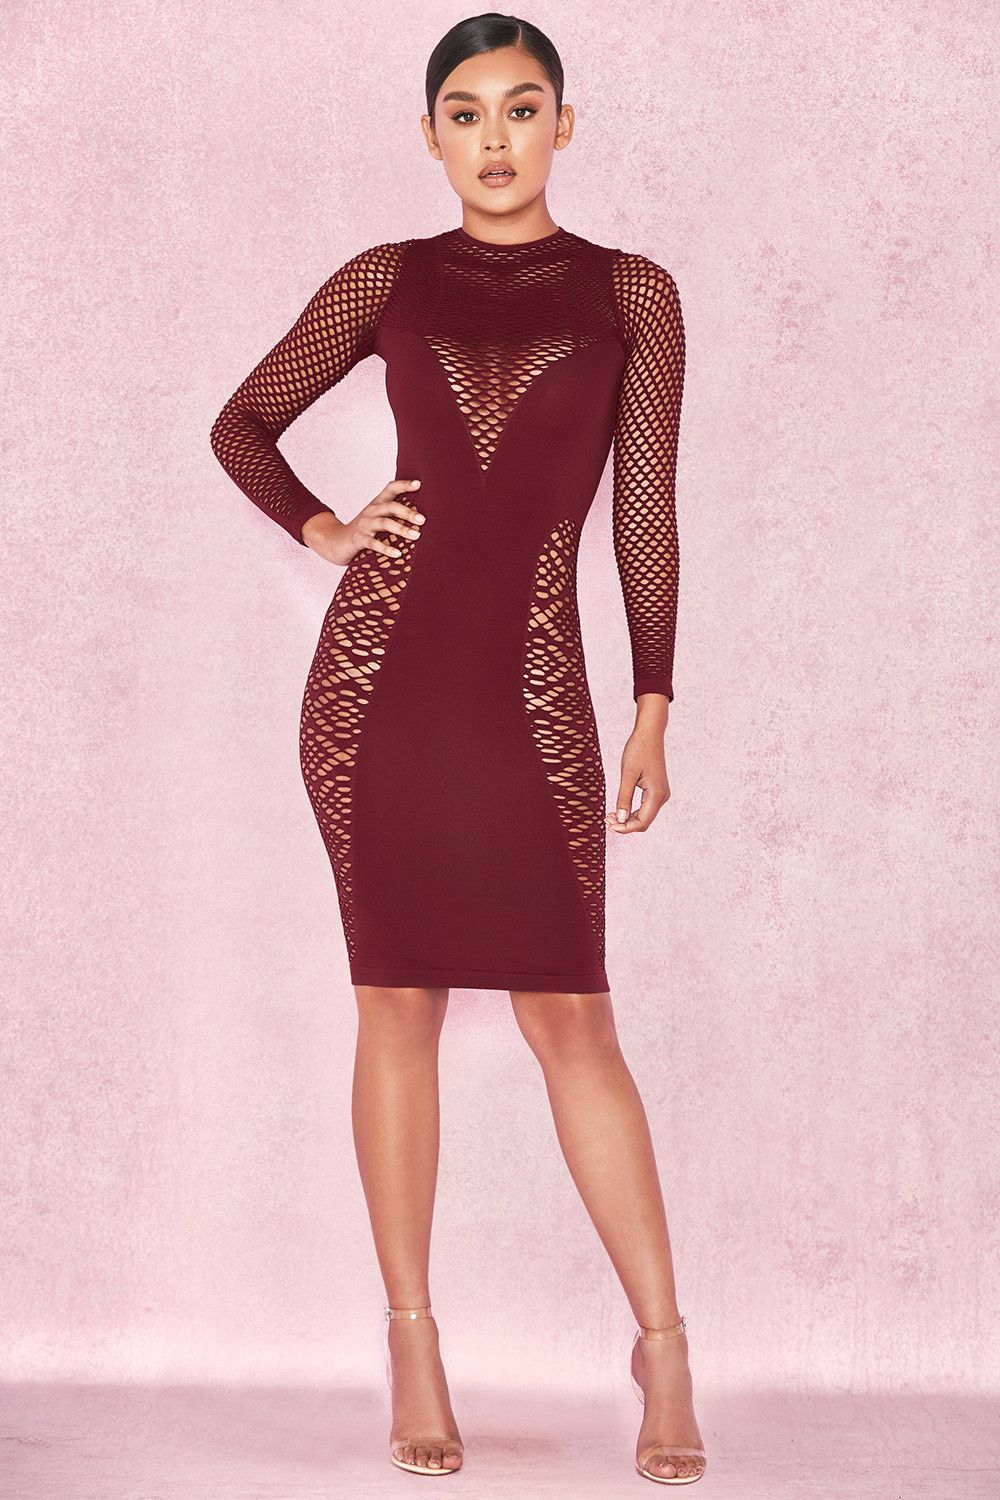 61faae964a8 Clothing   Bodycon Dresses    Silvy  Red Long Sleeve Open Knit Dress ...